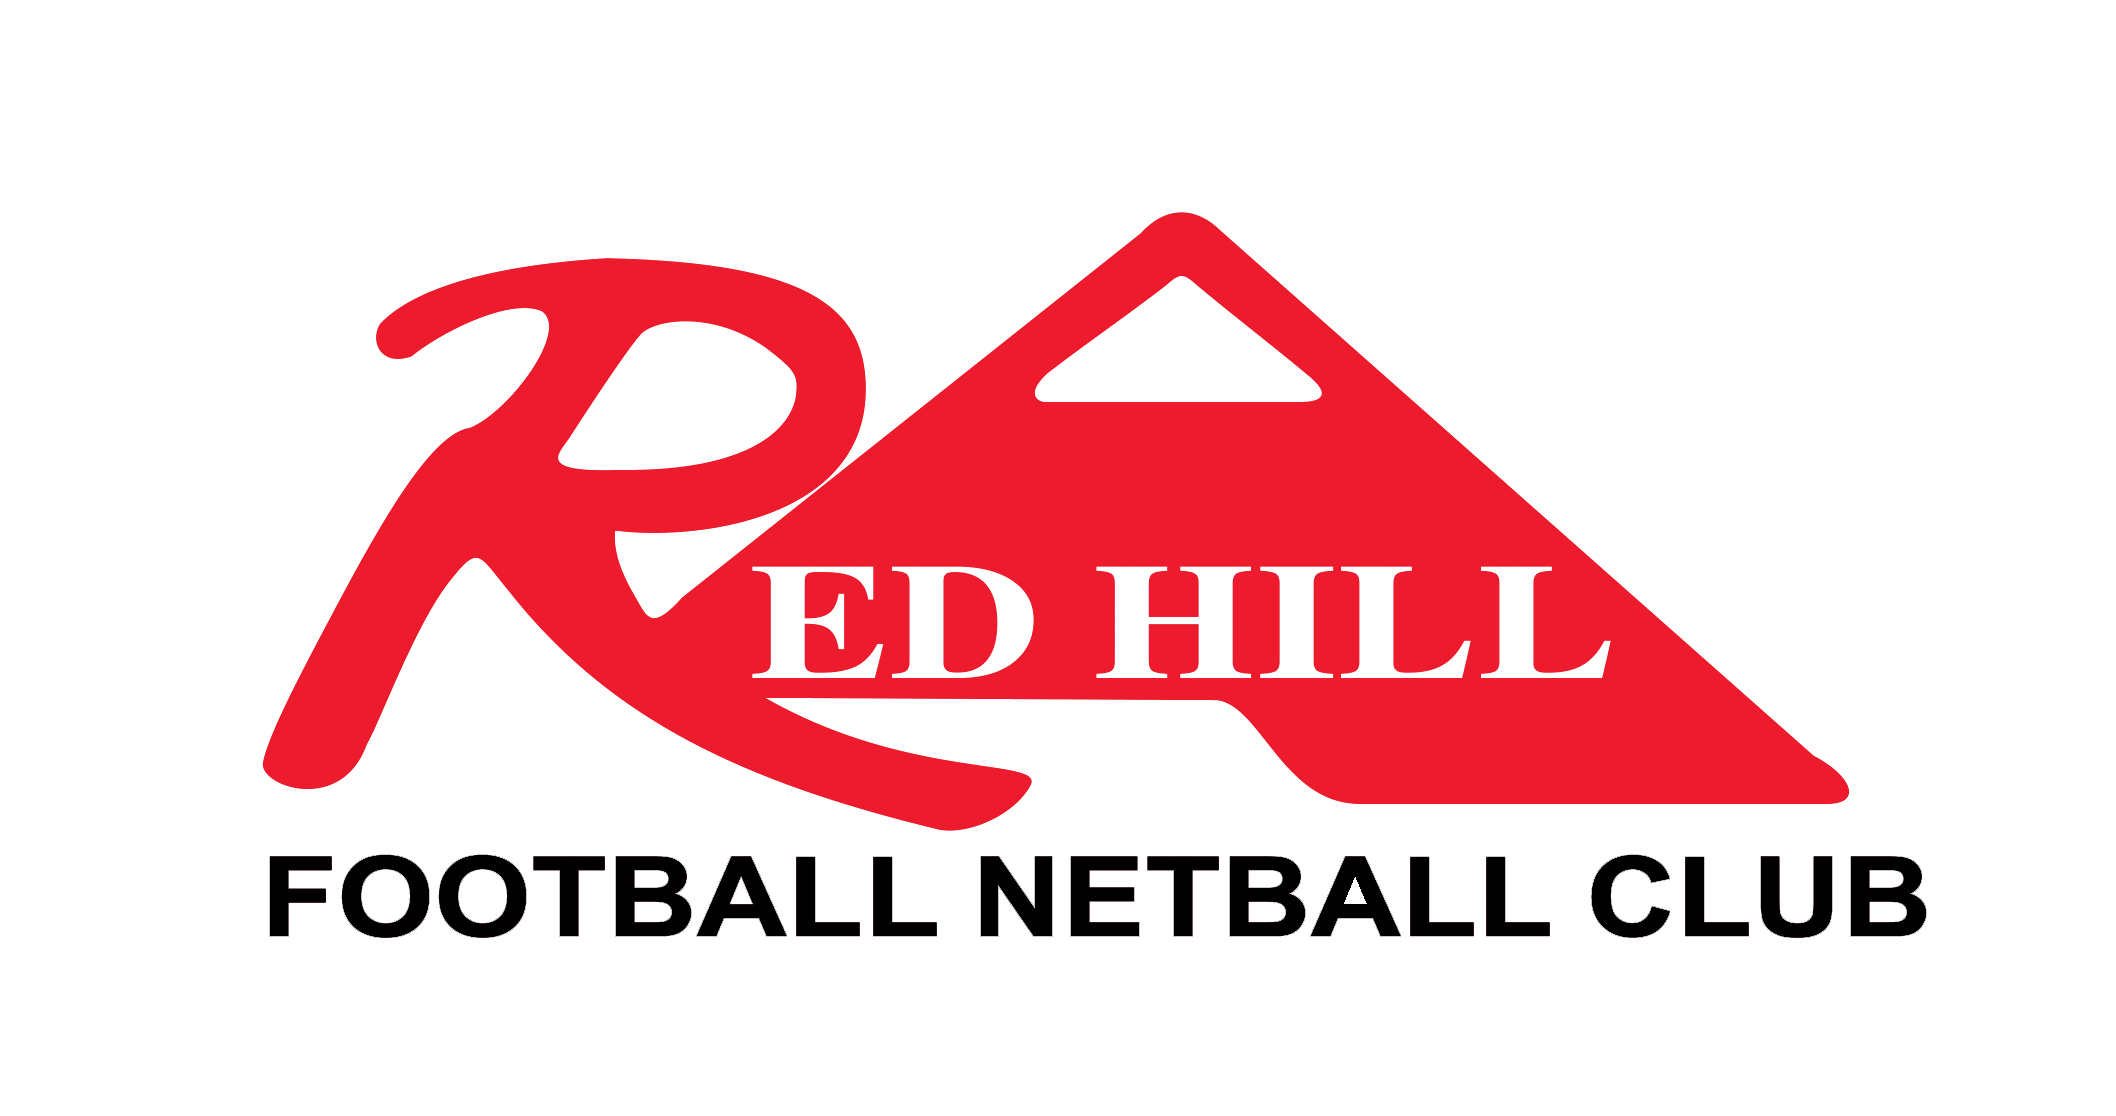 Red Hill Football Netball Club Foundation